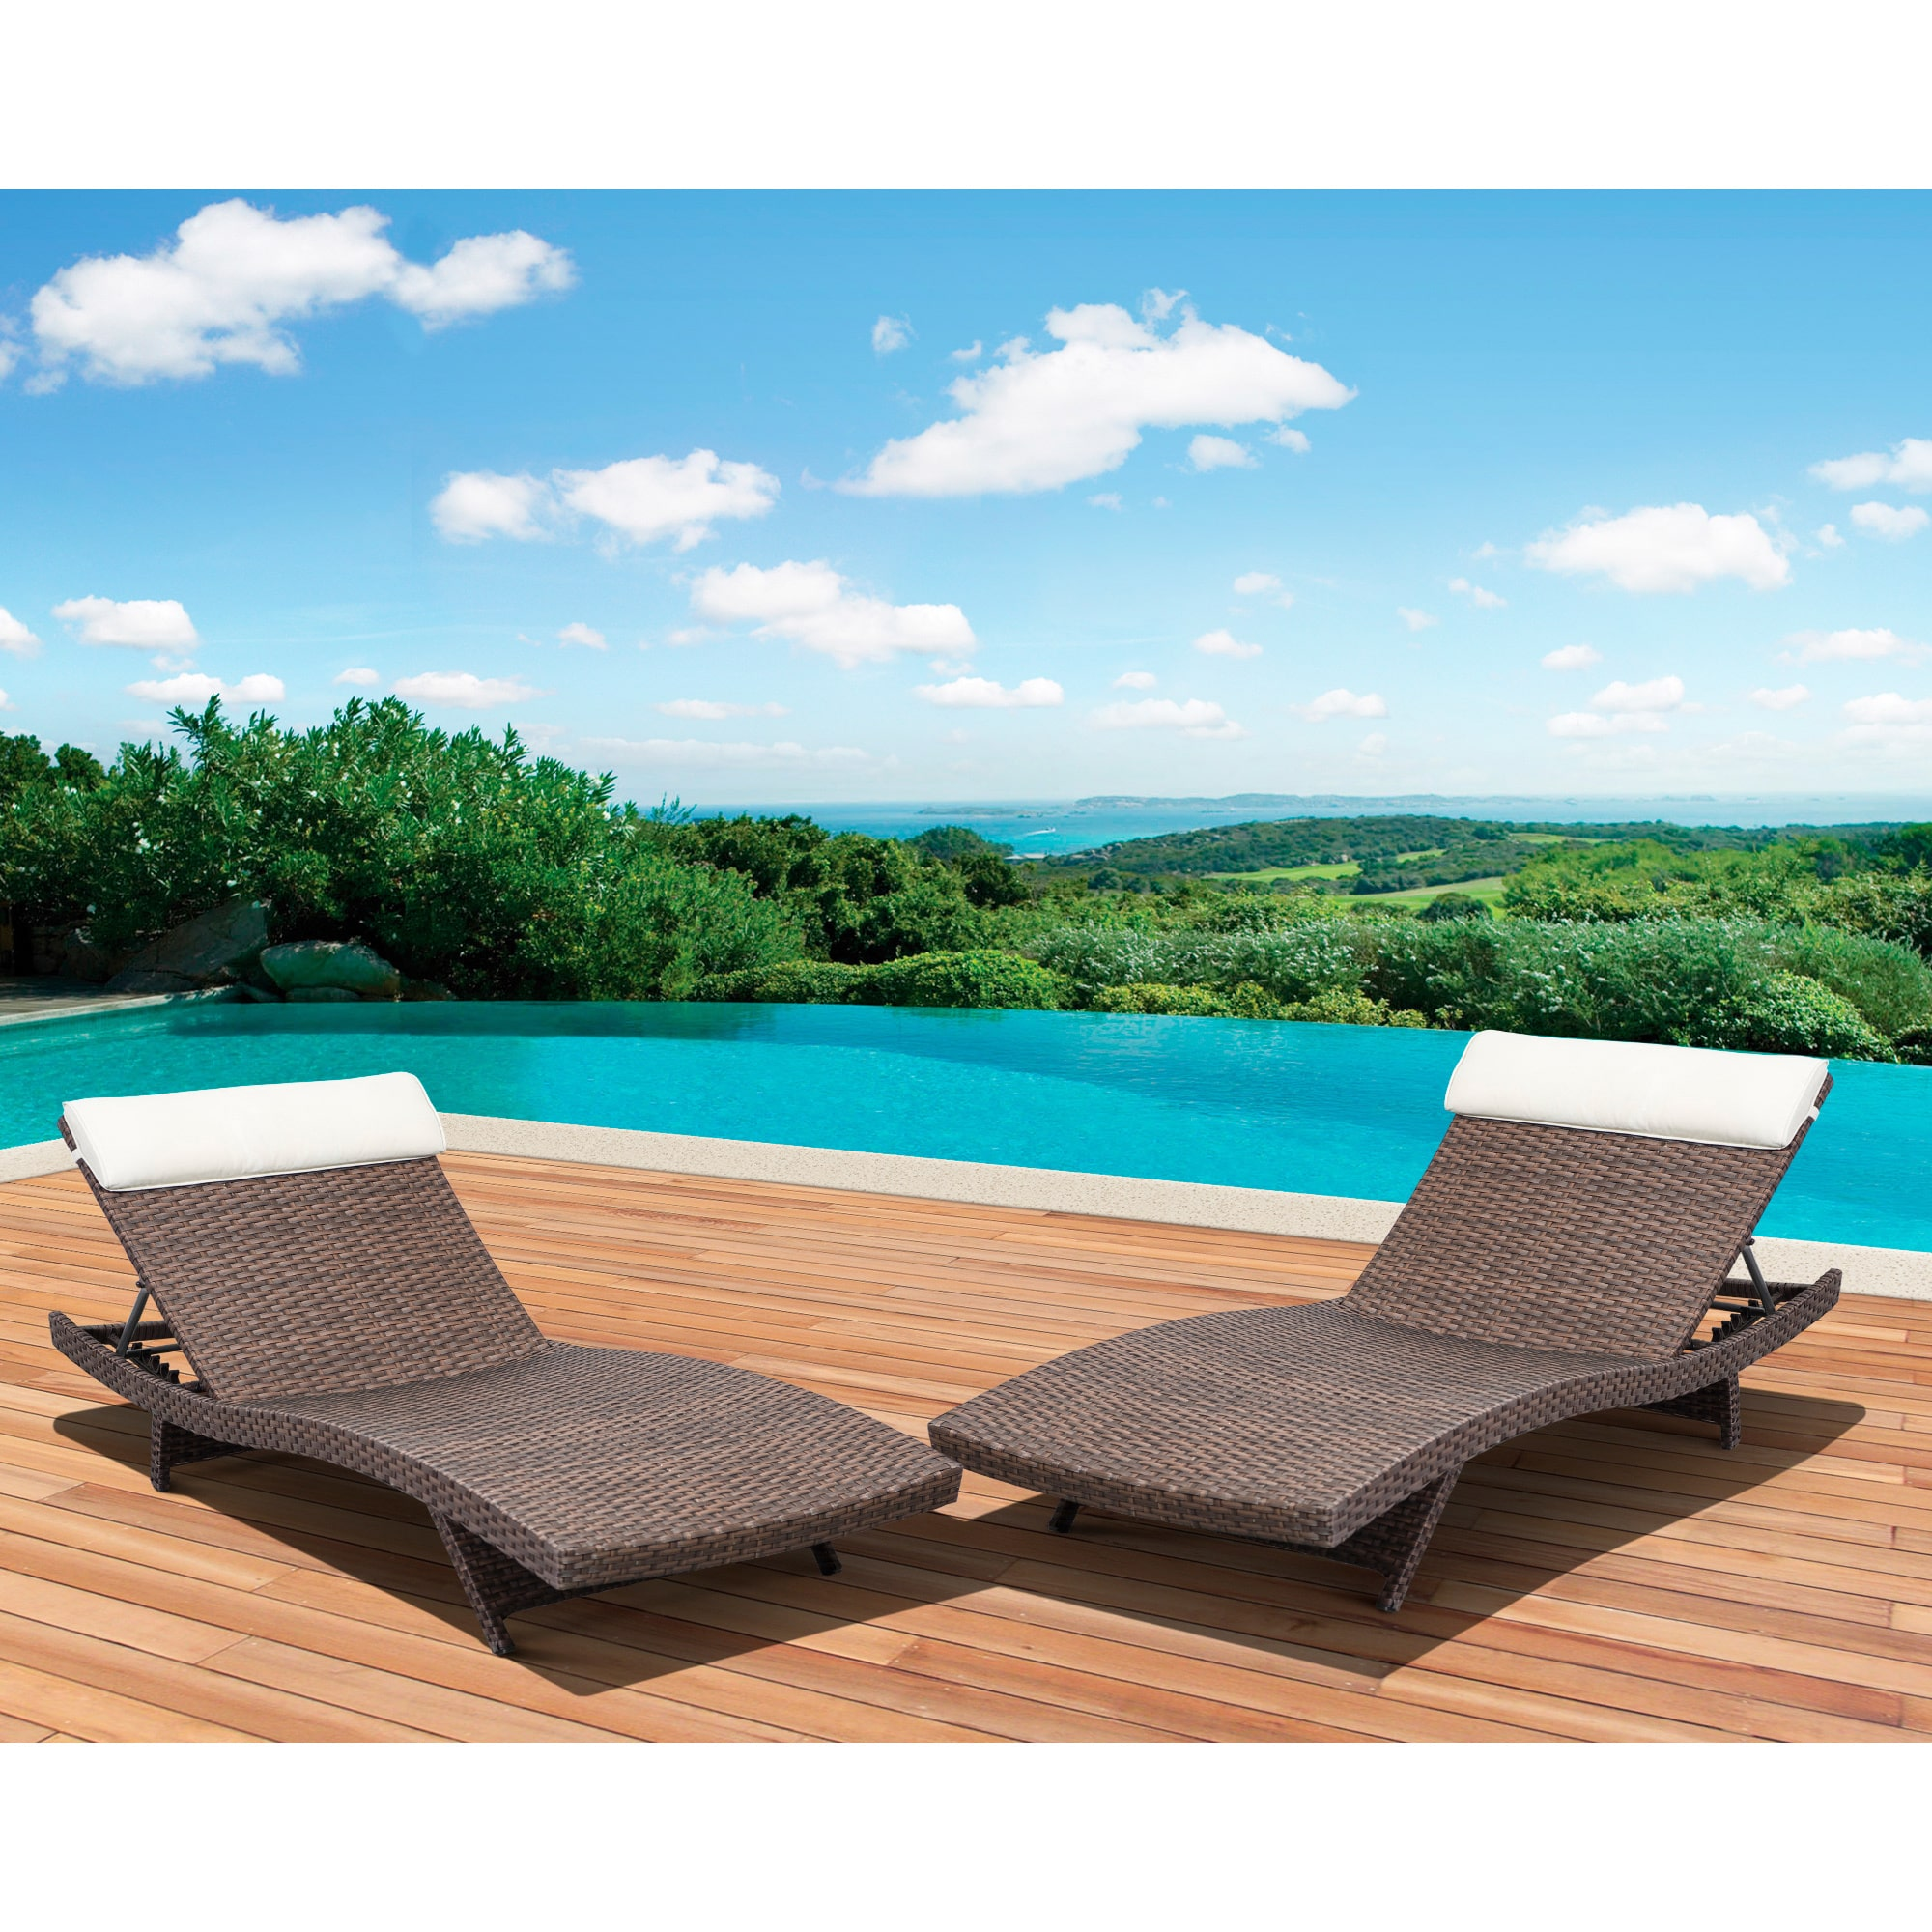 Atlantic Mykonos Deluxe Loungers Brown (Set of 2)